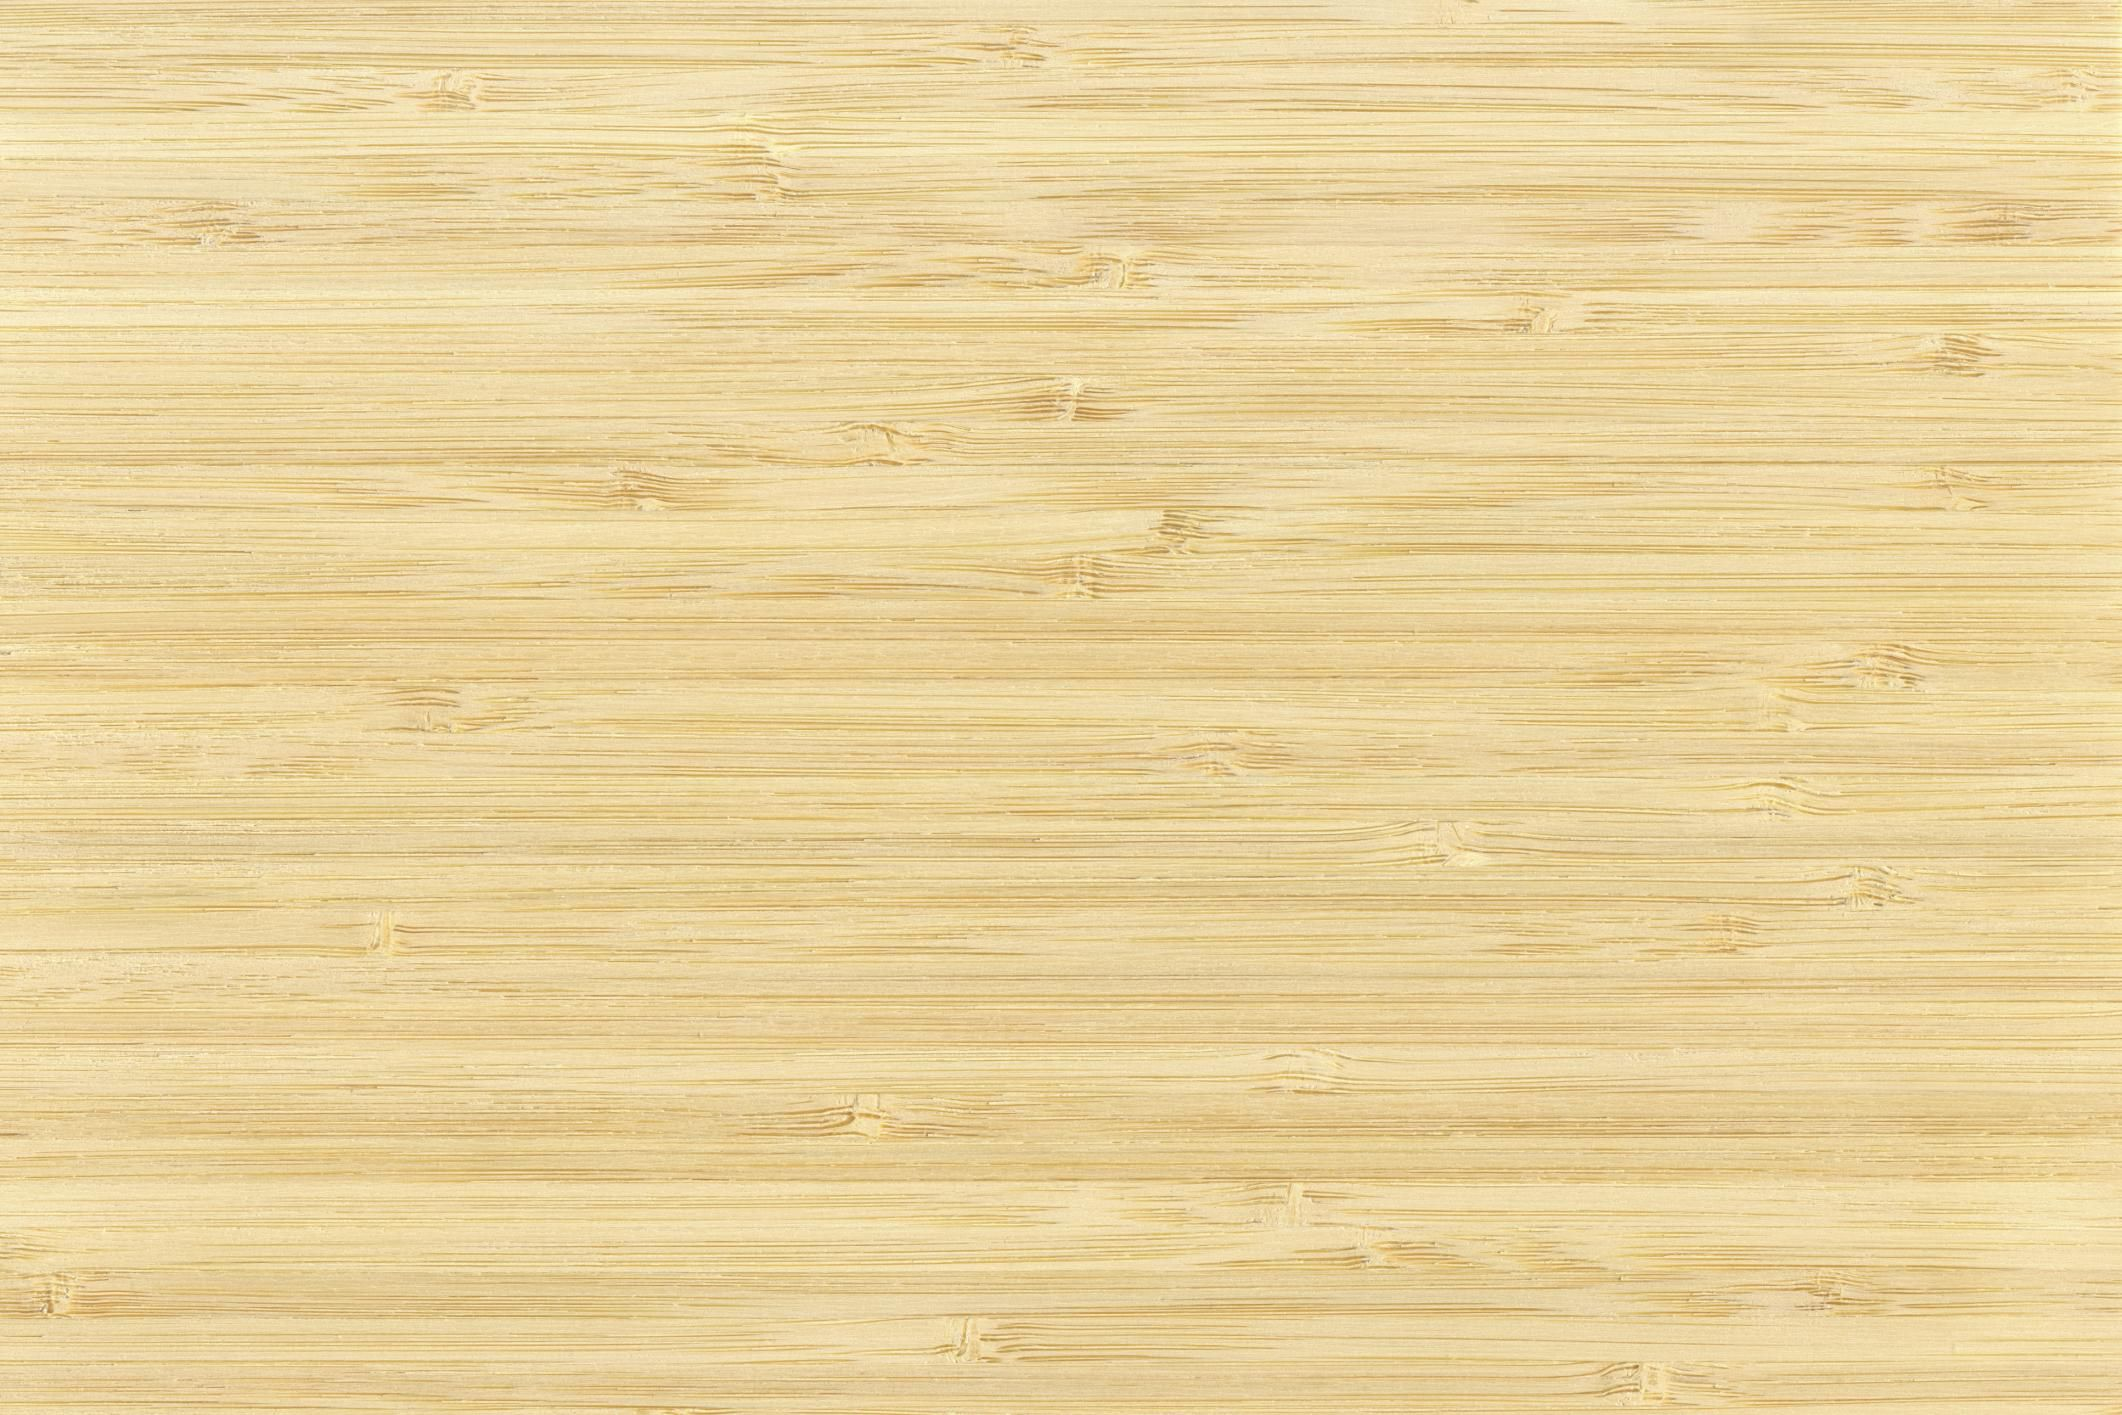 Bamboo flooring in a bathroom things to consider for Floor and flooring